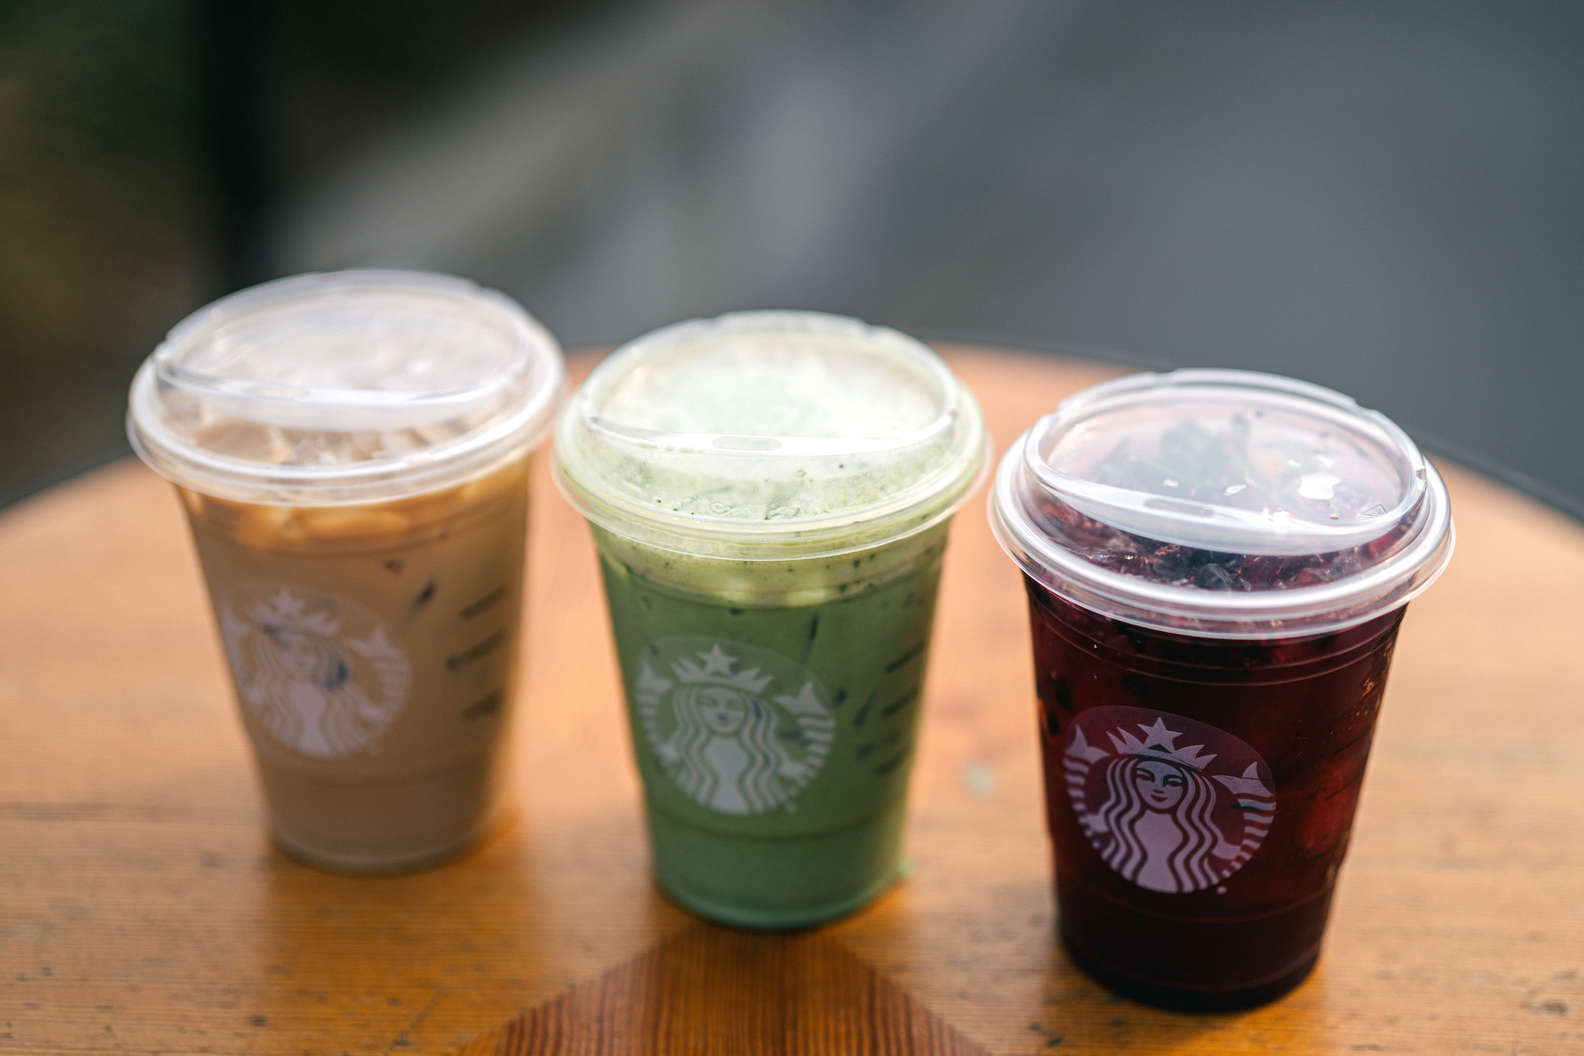 Iced Starbucks drinks now come in straw-less sippy cups and we're into them